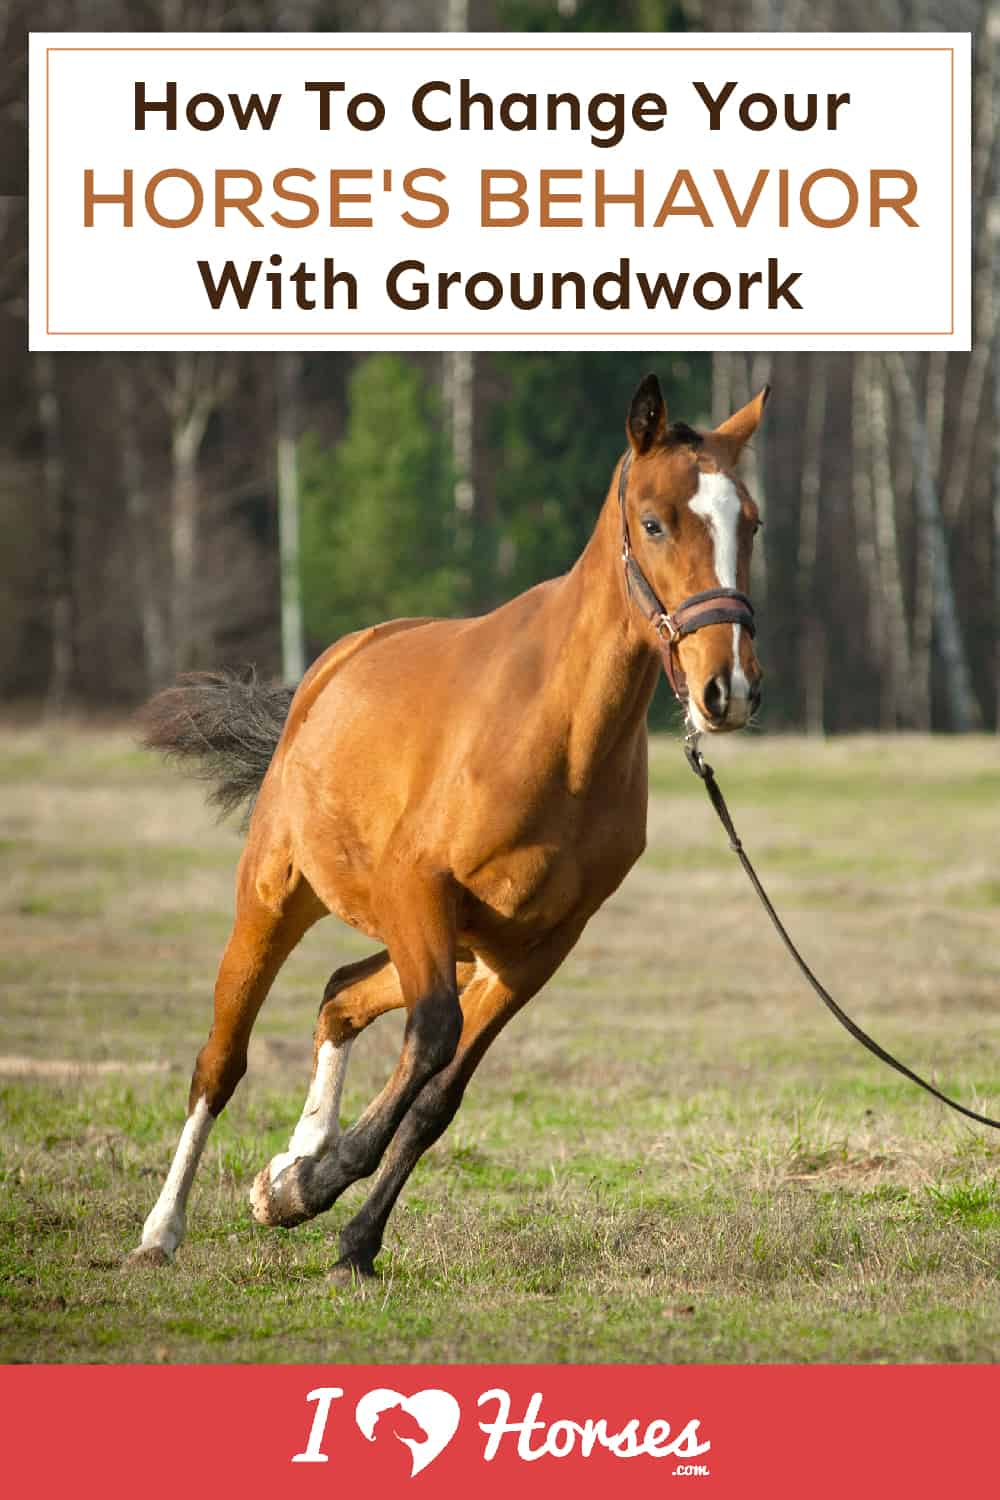 How To Use Groundwork To Change Horse Behavior